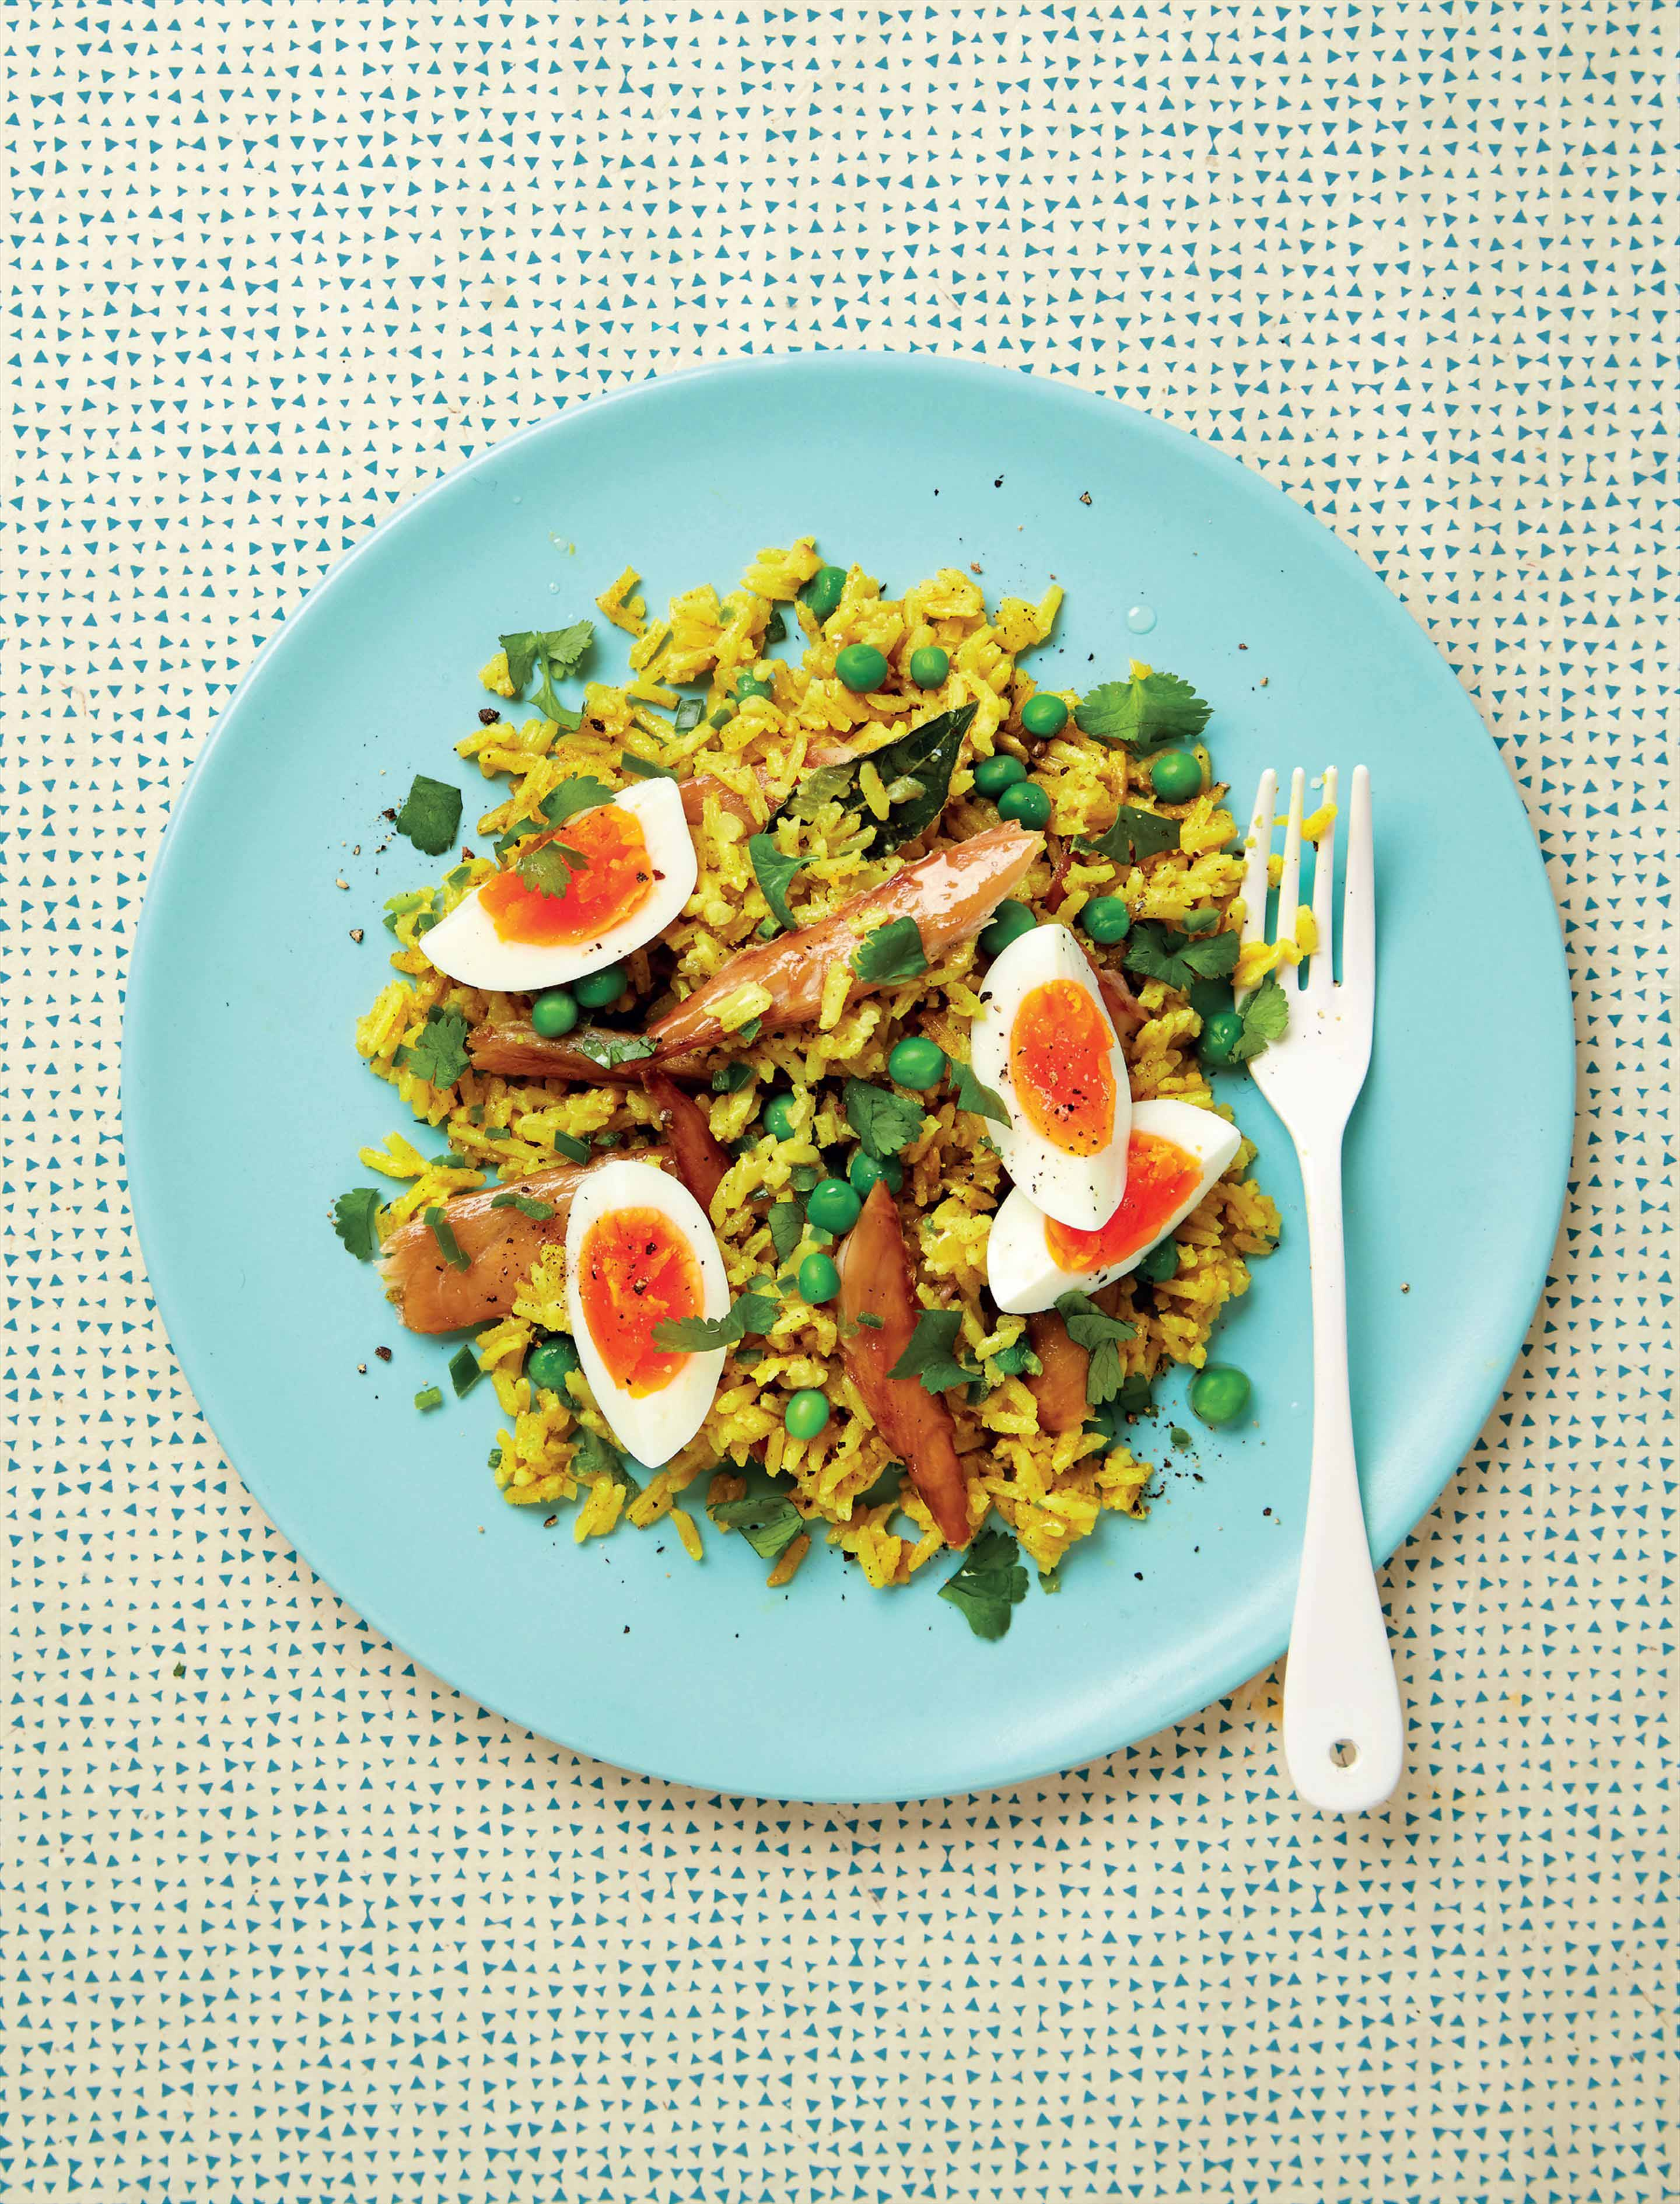 Breakfast kedgeree